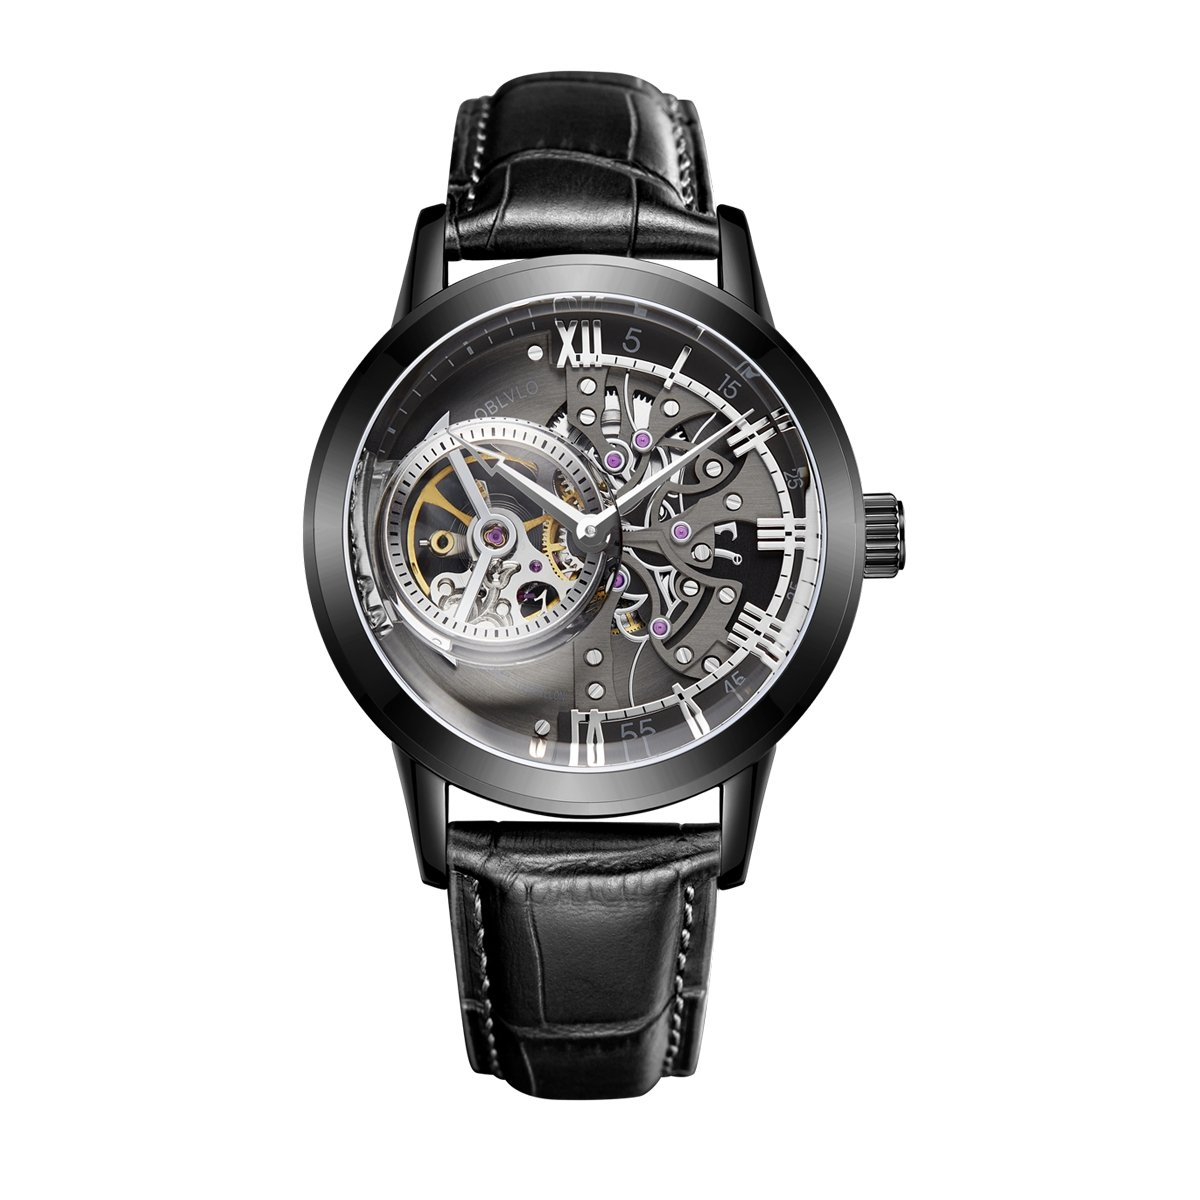 OBLVLO Skeleton Mens Watches Black Steel Automatic Watches Leather Strap Tourbillon Watch OBL8238